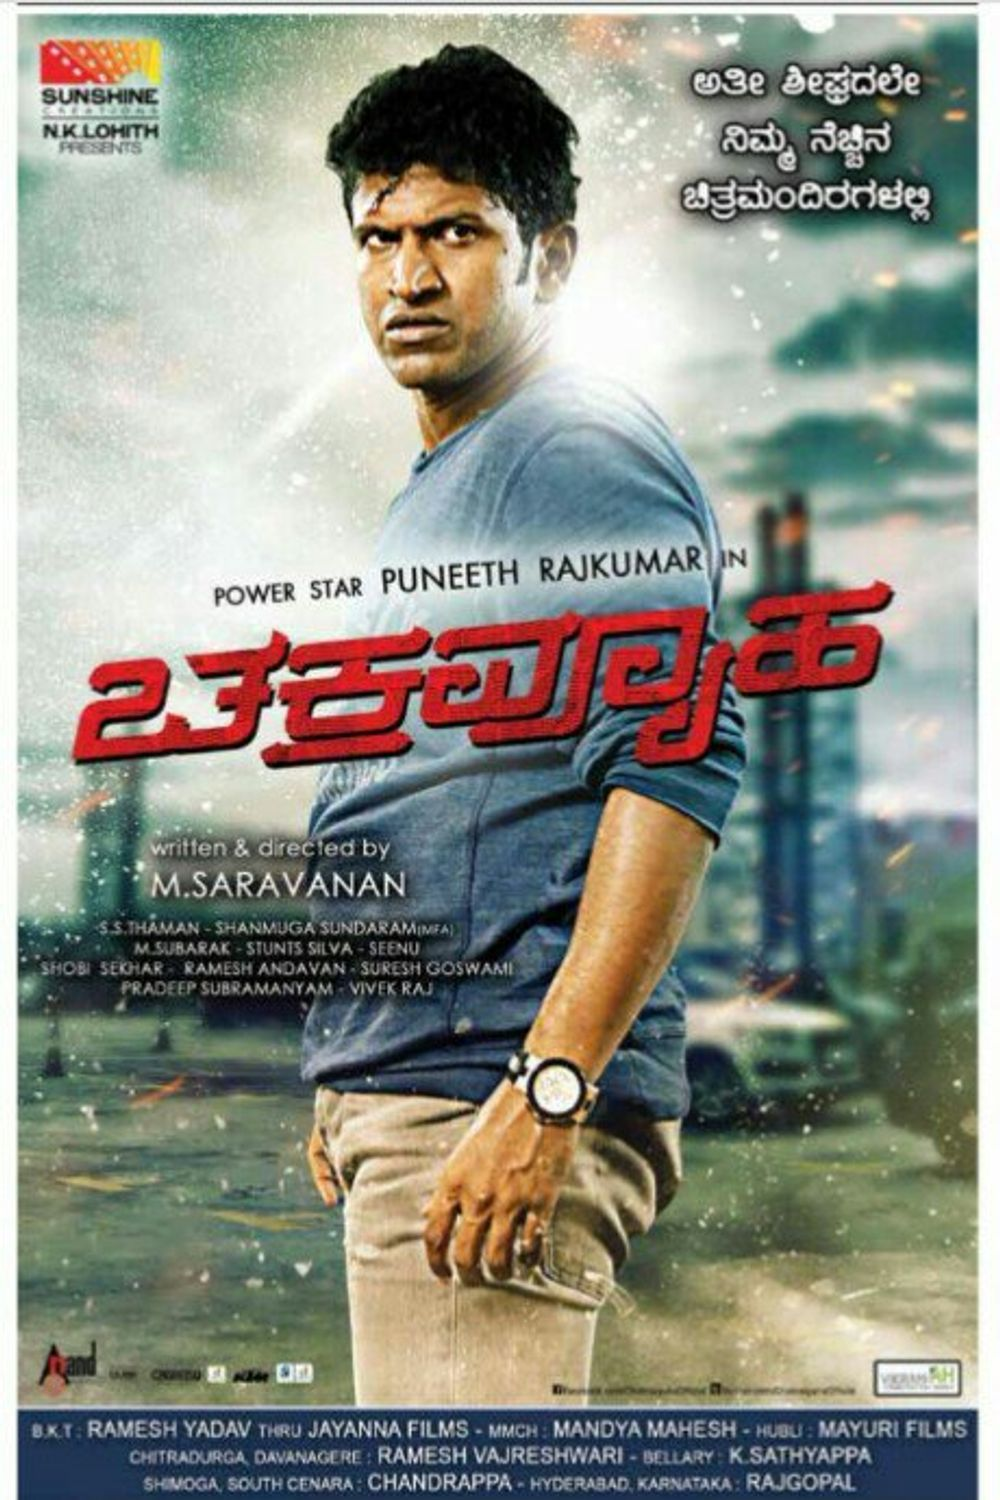 Mission Bharath (Power) 2021 Hindi Dubbed ORG 720p HDRip 1.4GB Download